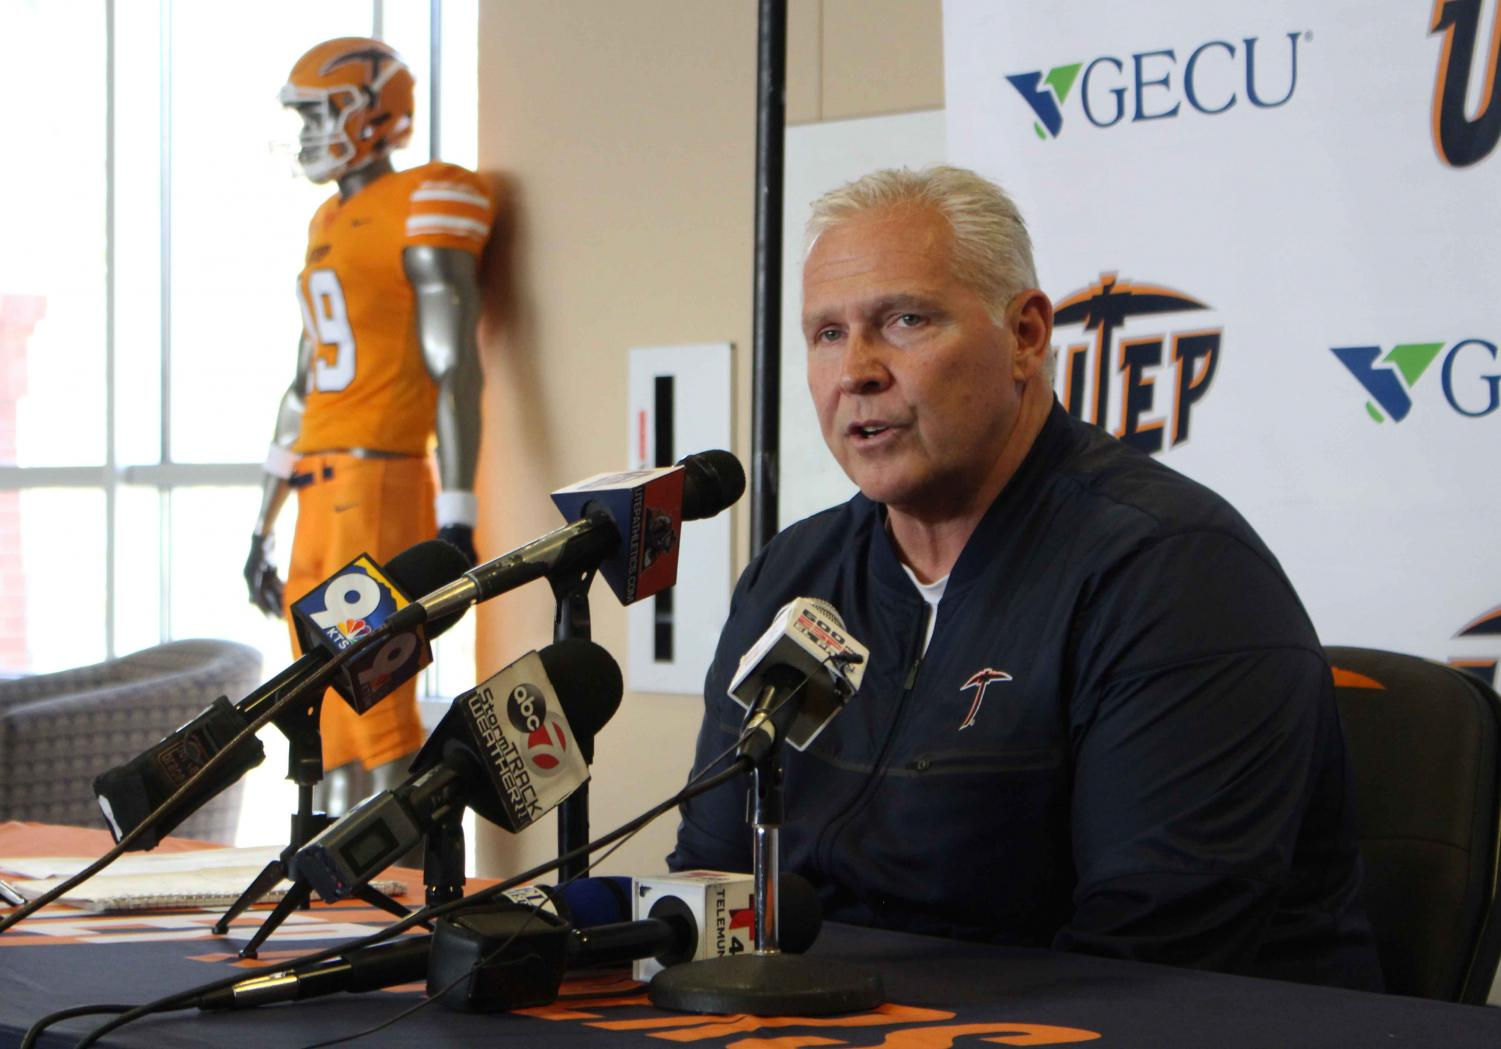 UTEP+football+Head+Coach+Dana+Dimel+addressed+the+media+after+announcing+his+2019+recruiting+class+Feb.+6%2C+at+the+Larry+K.+Durham+Sports+Center.+